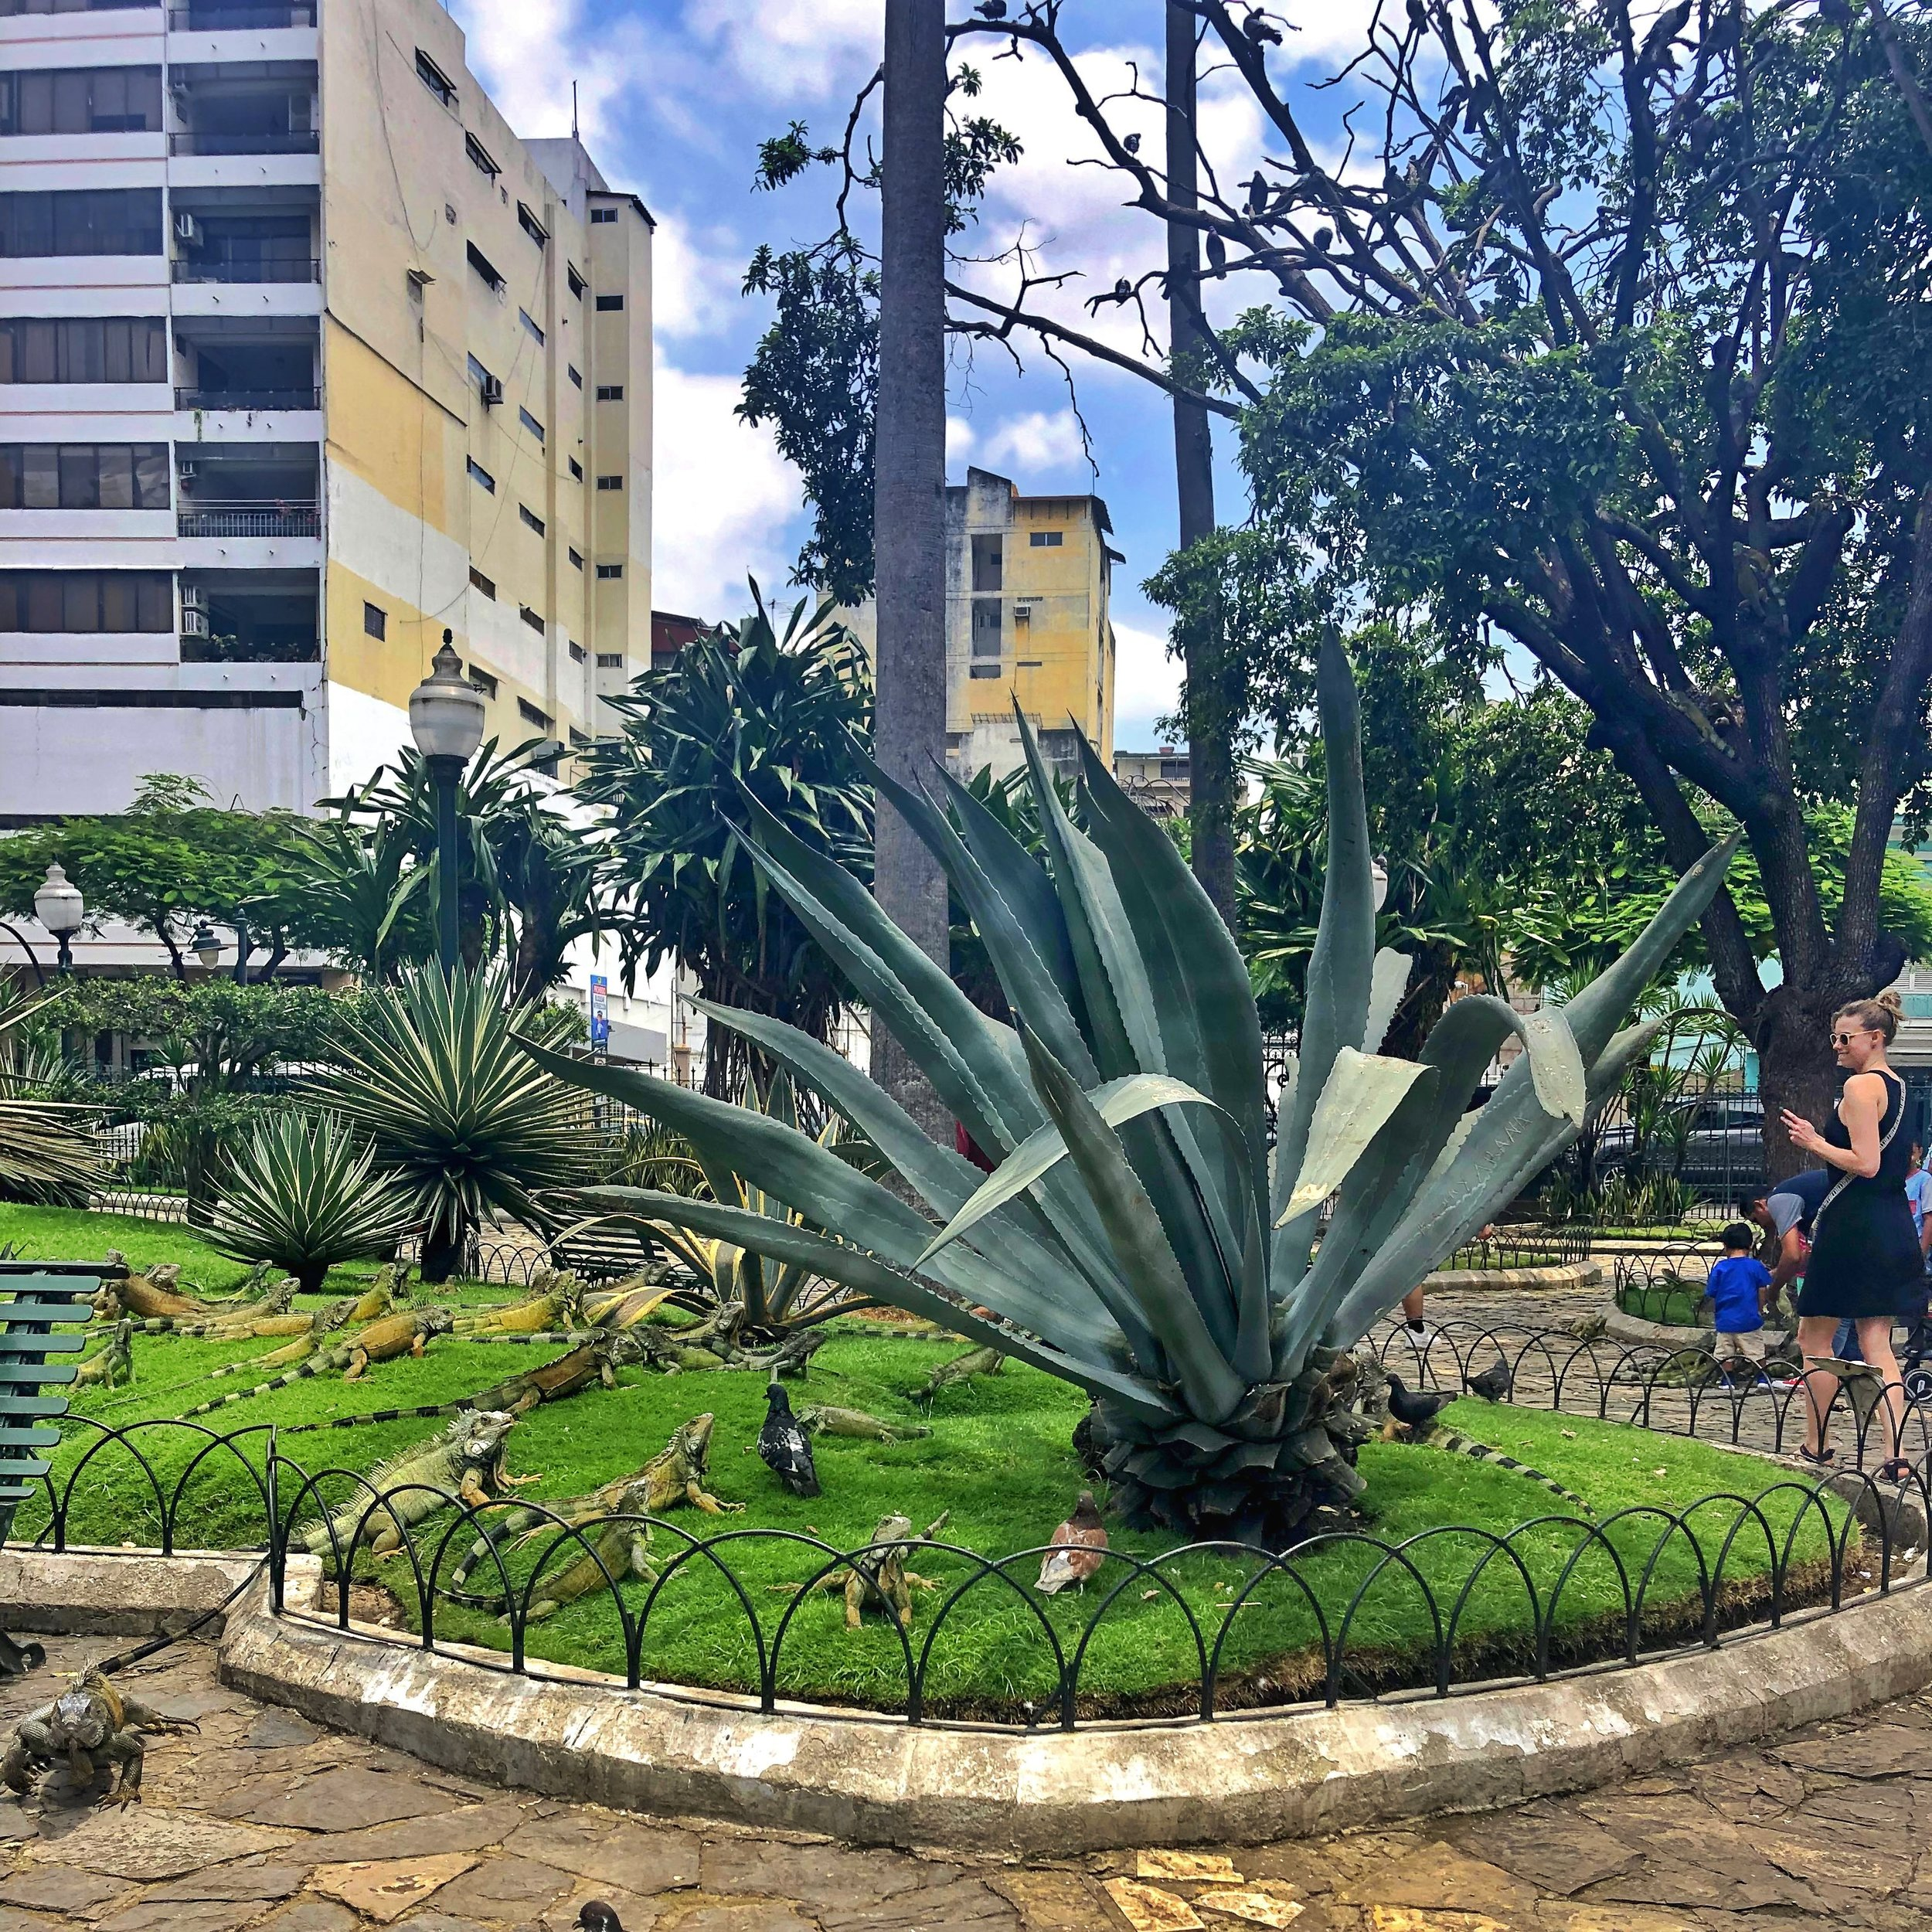 A little oasis (for humans AND iguanas) right in downtown Guayaquil